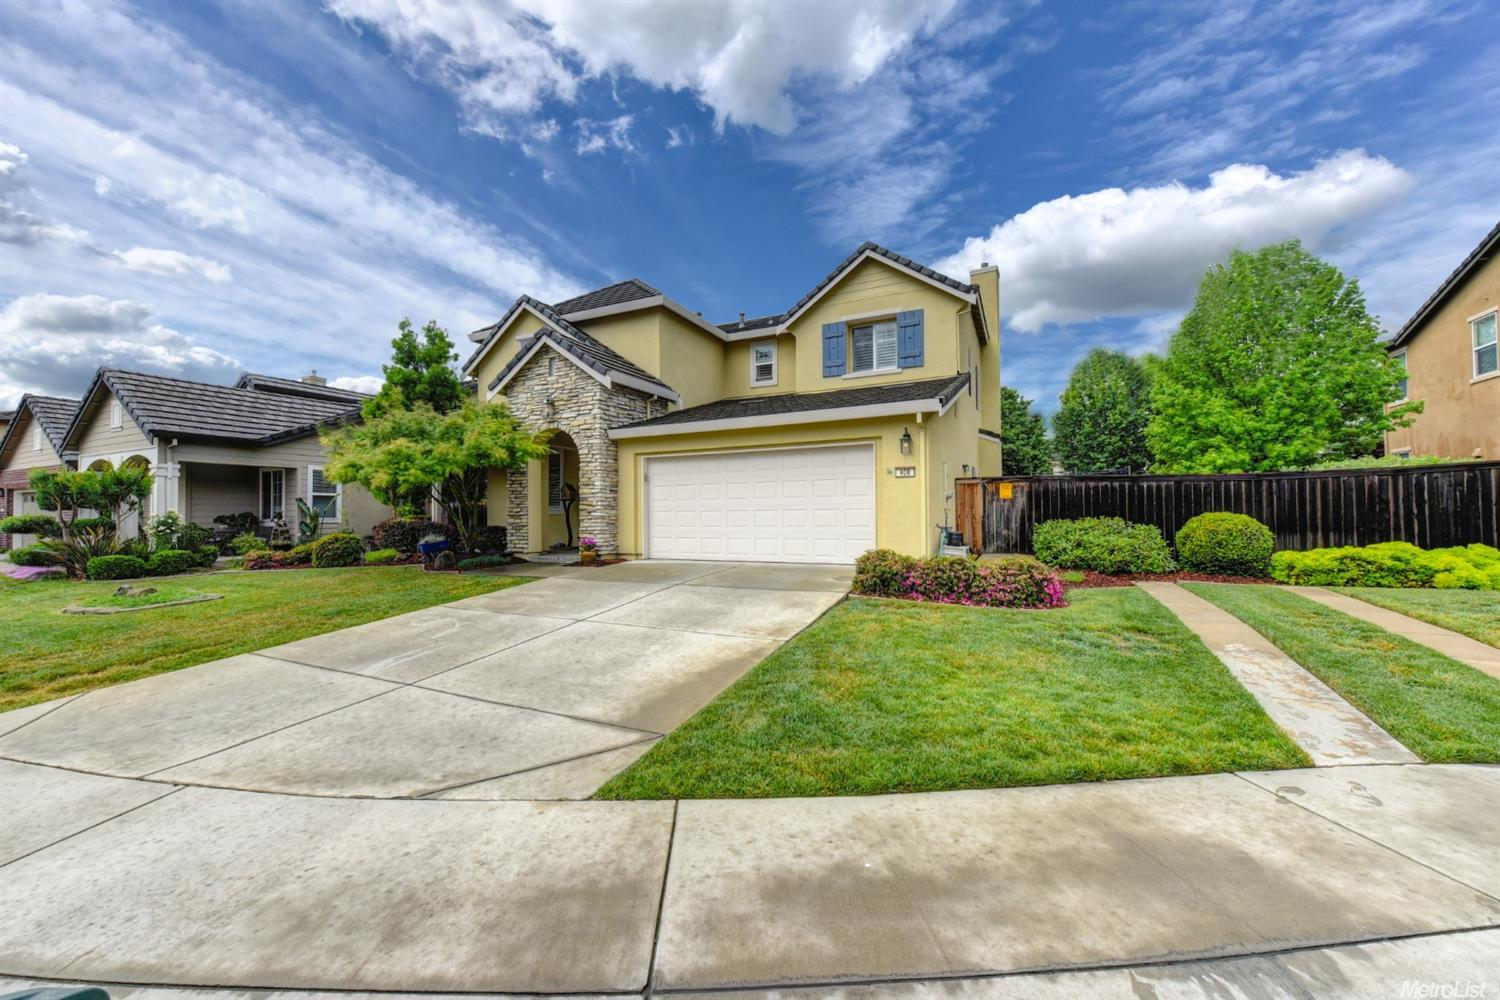 408 Donegal Ct, Lincoln, CA